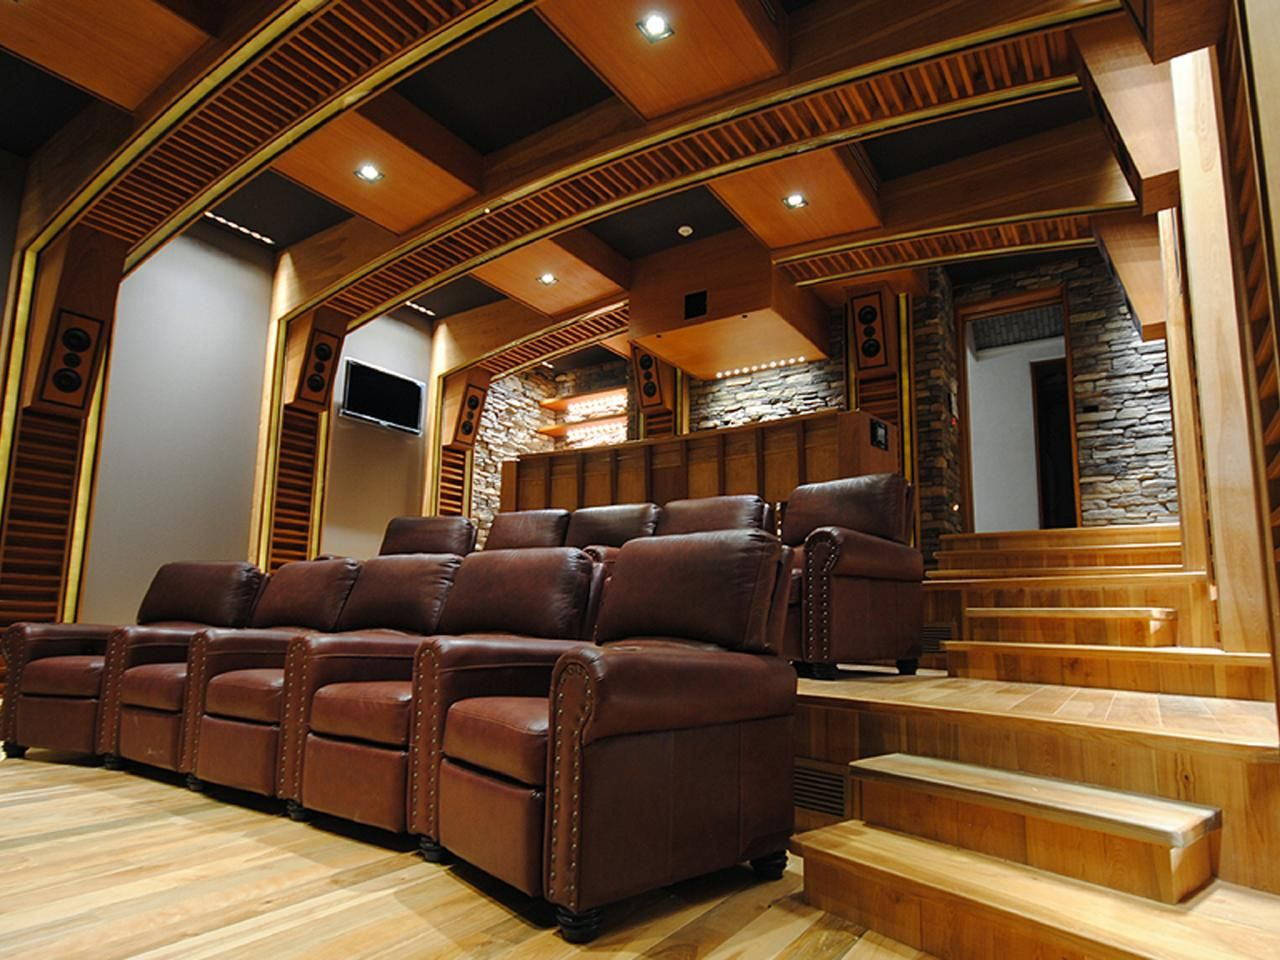 media room with stadium seating | home theater with stadium seating this home theater system features & media room with stadium seating | home theater with stadium ... islam-shia.org